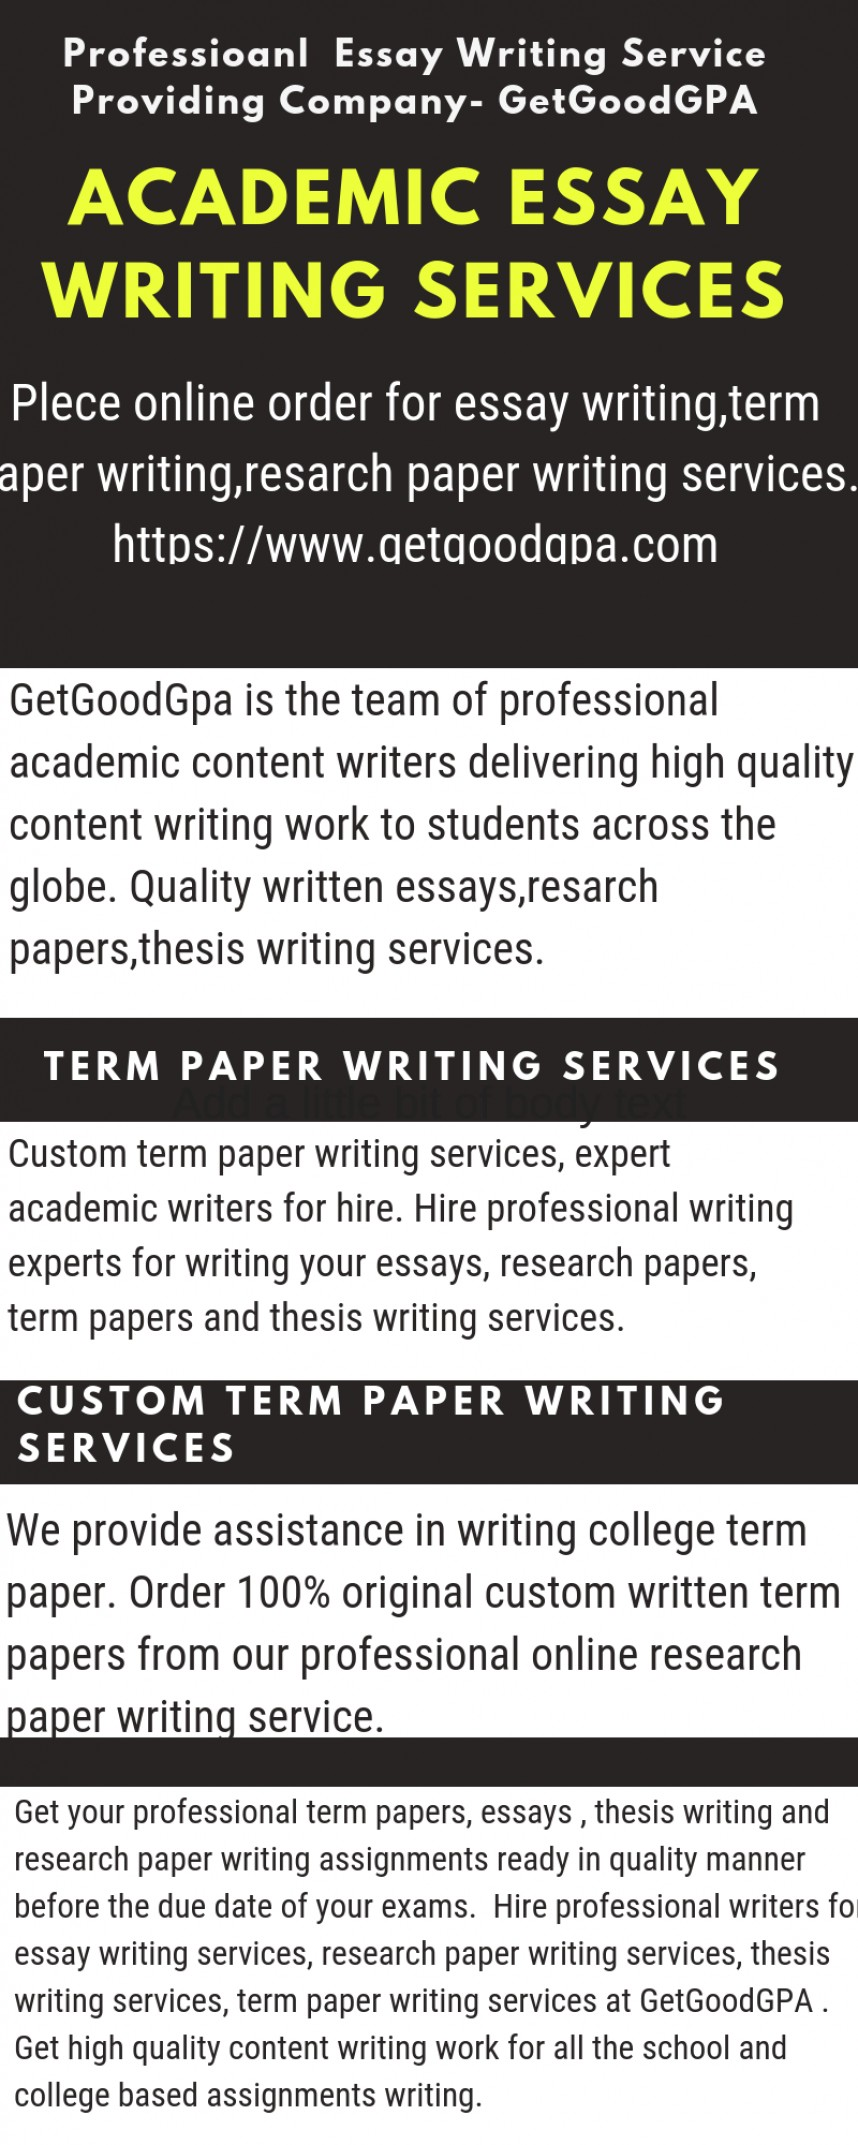 015 Research Paper Custom Writing Dreaded Services Thesis Service Term